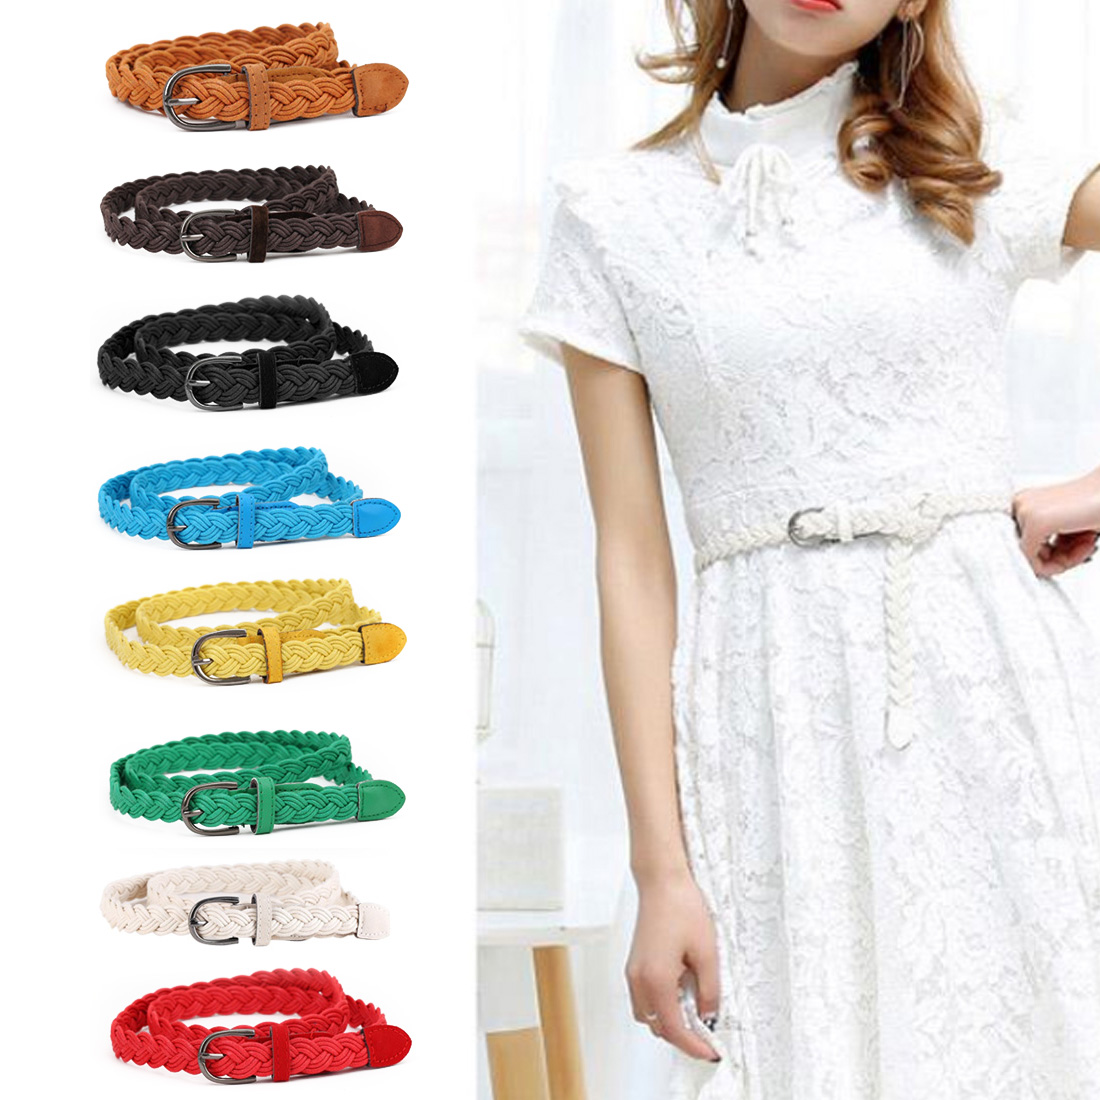 2019 NEW Style Womens Belt Brief Knitted Candy Colors Hamp Rope Braid Belt Female Belt For Dress High Quality Ceinture Femme